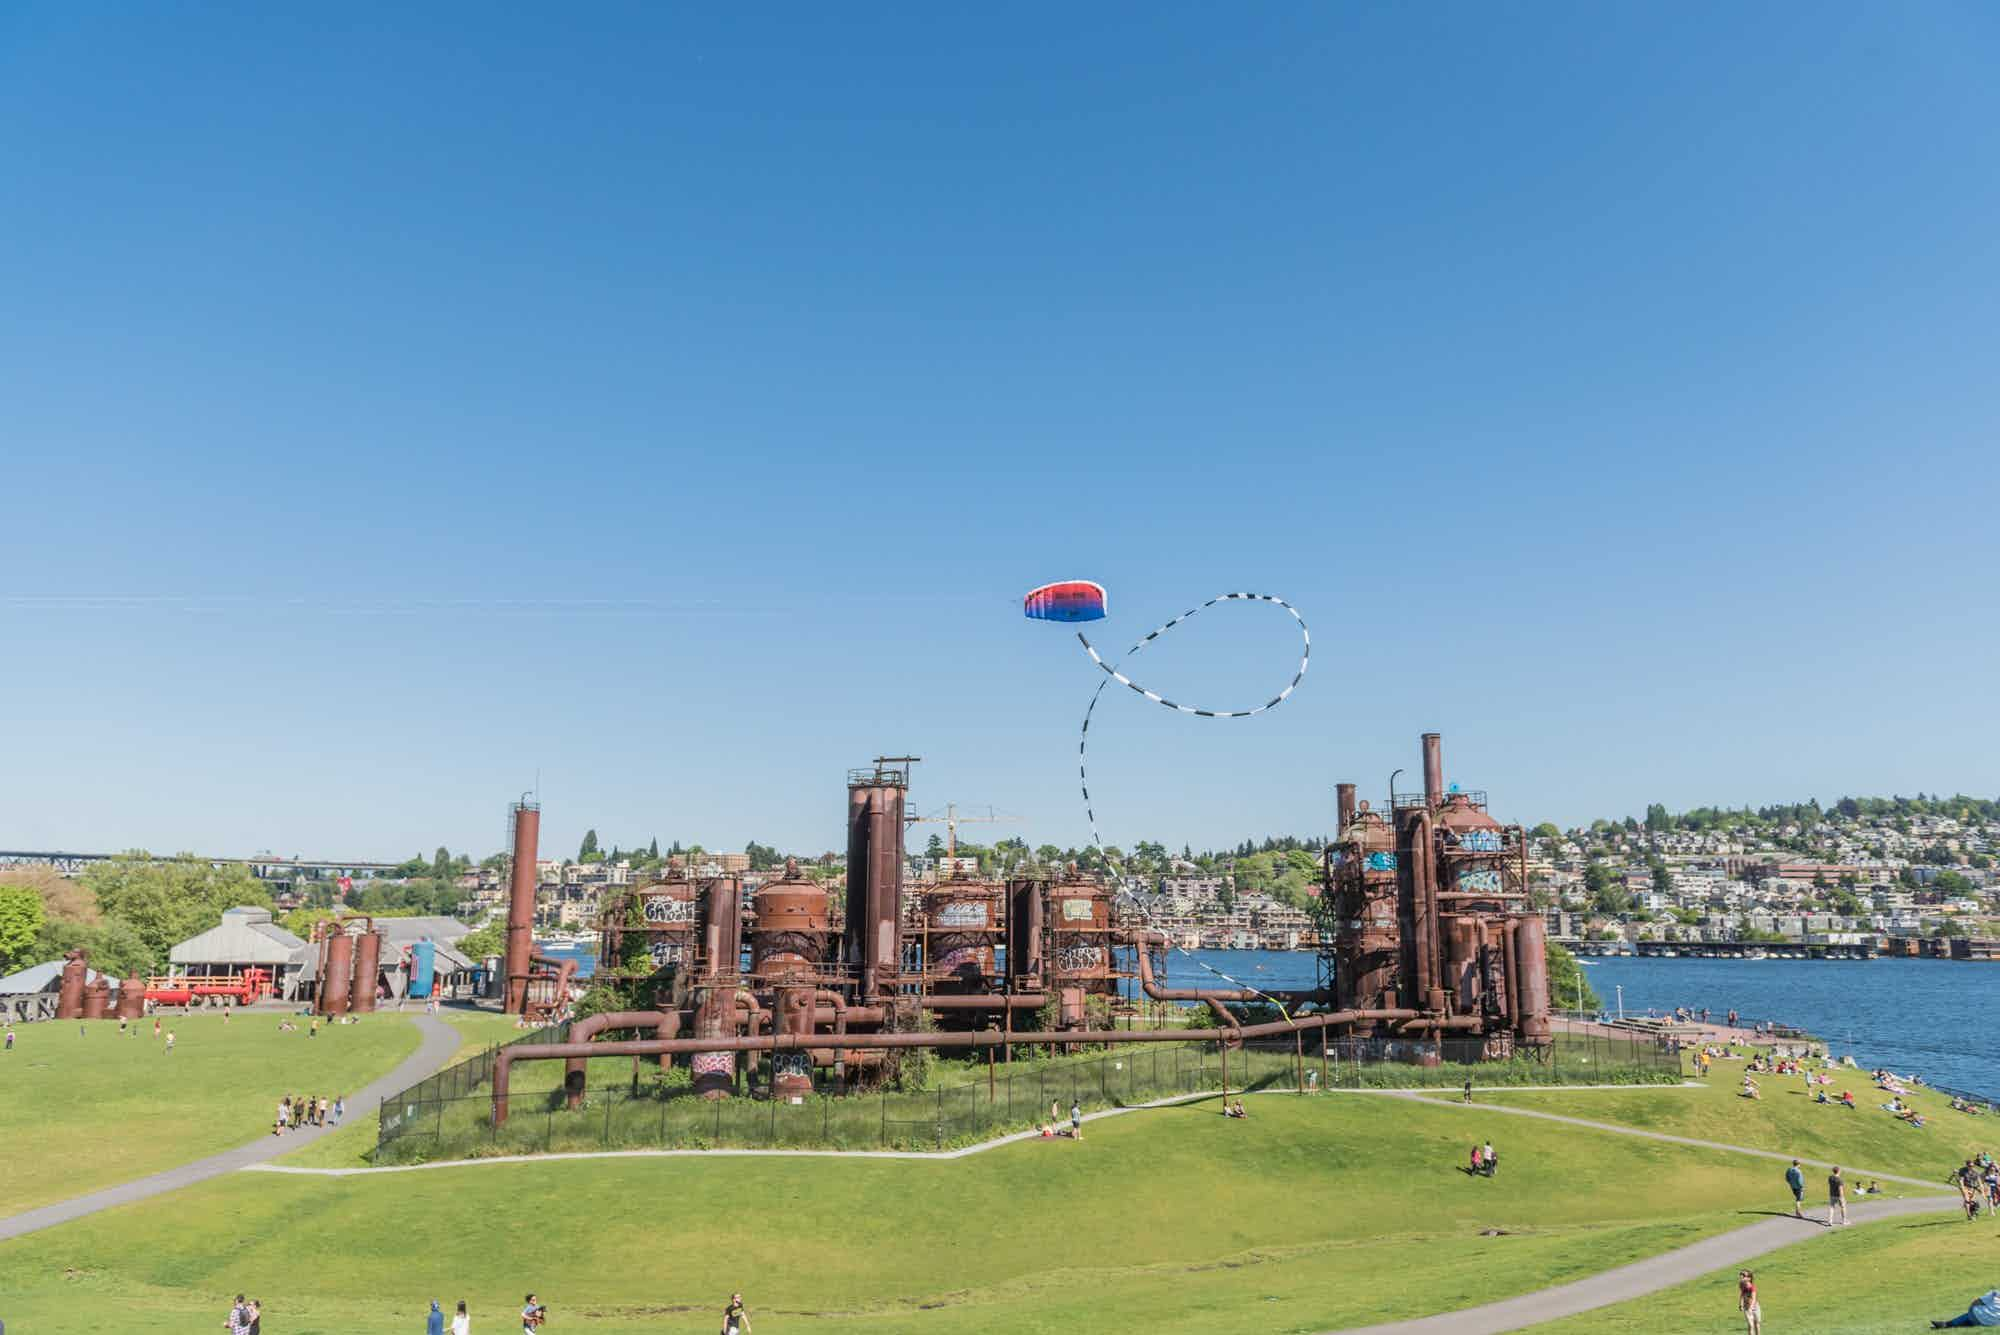 Old structures at Gas Works Park